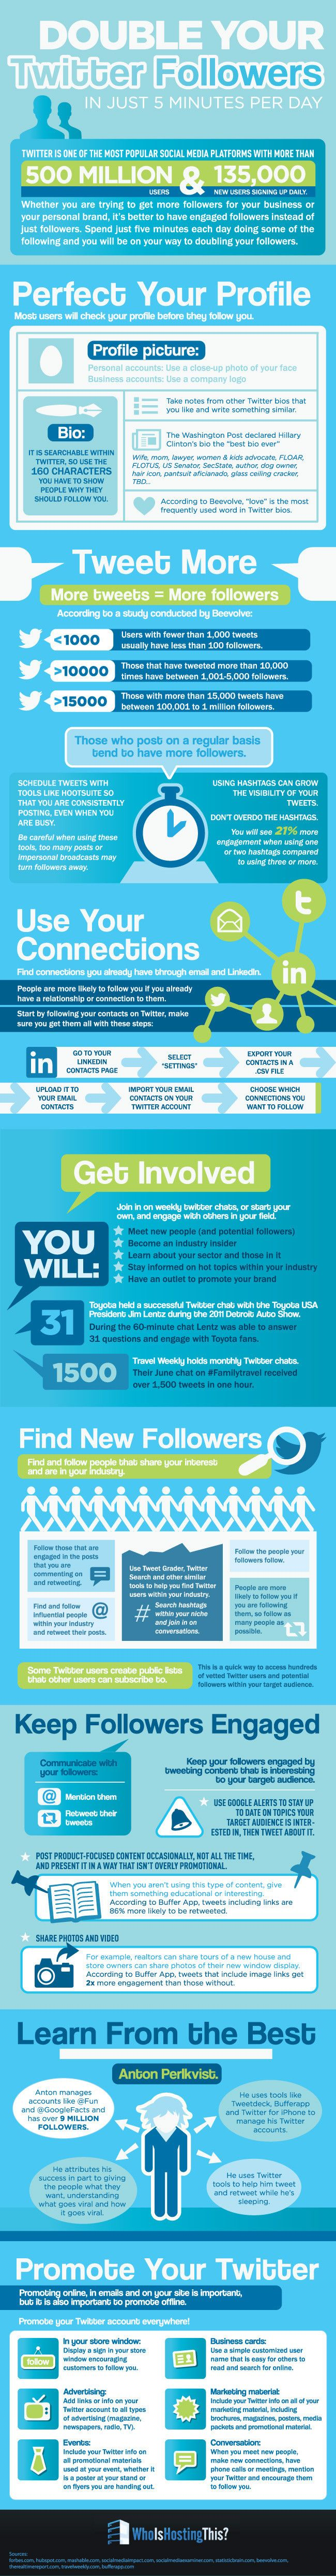 Double your #twitter followers in just a 5 minutes work each day - #infographic #socialmedia